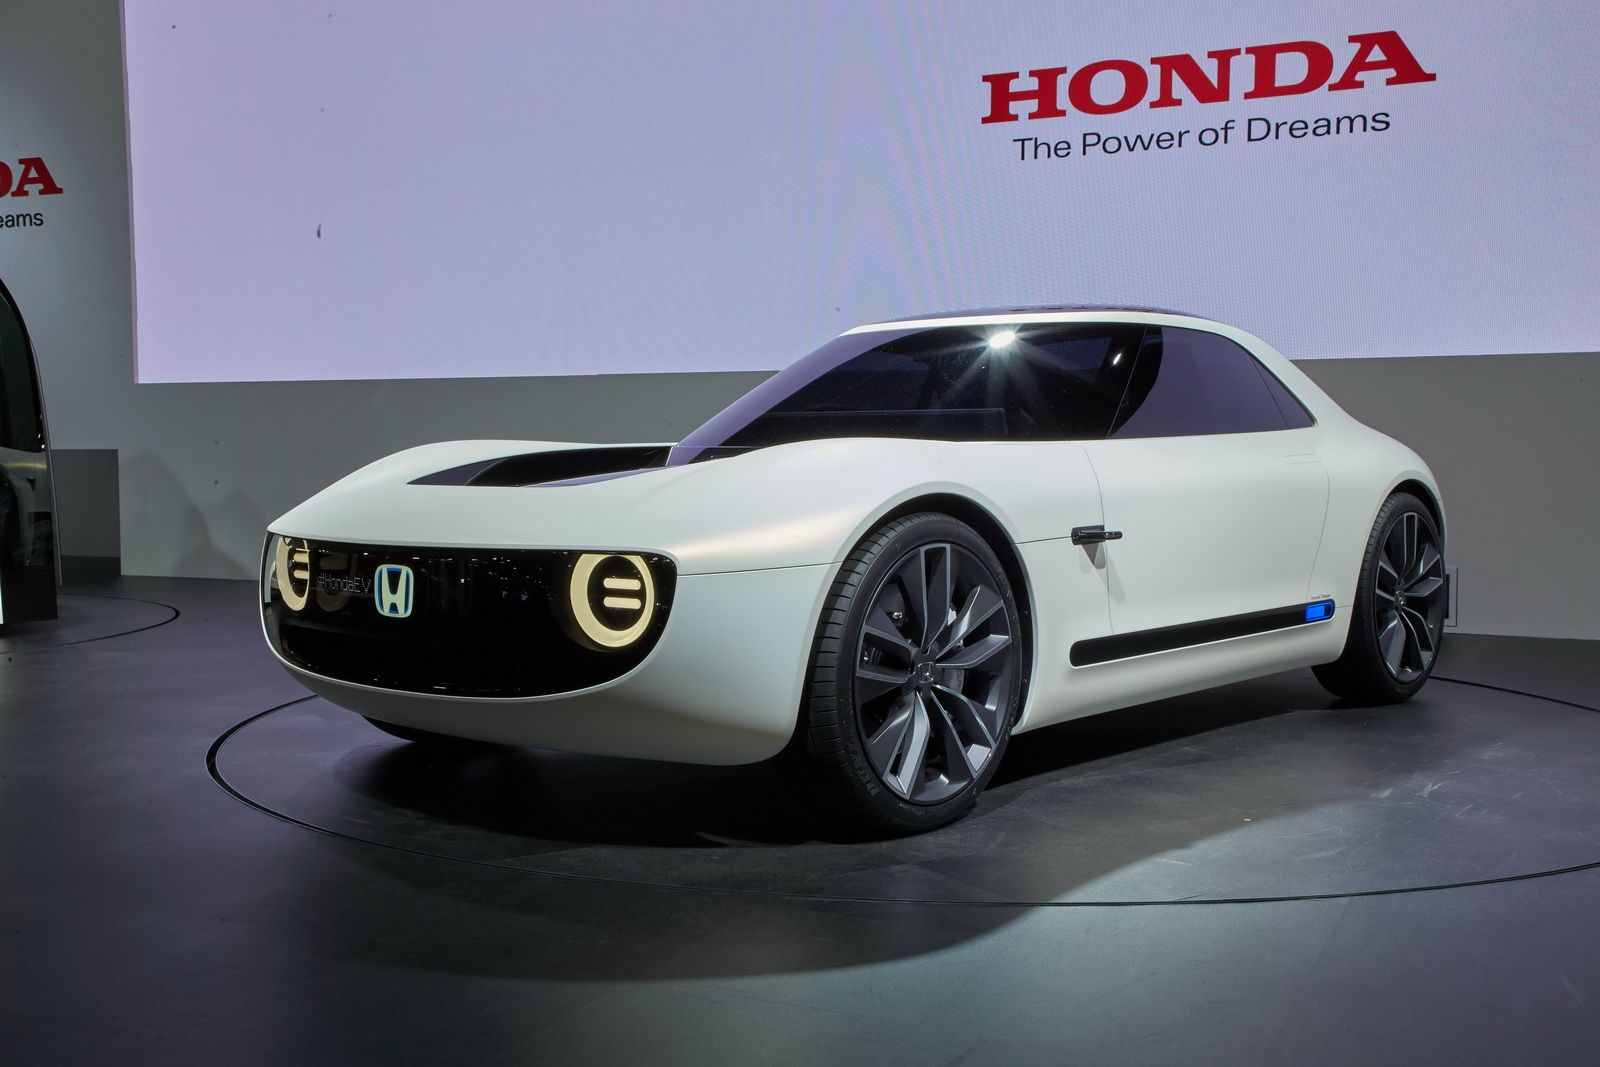 Honda Seems To Have The Right Idea On How Make An Electric Car Judging